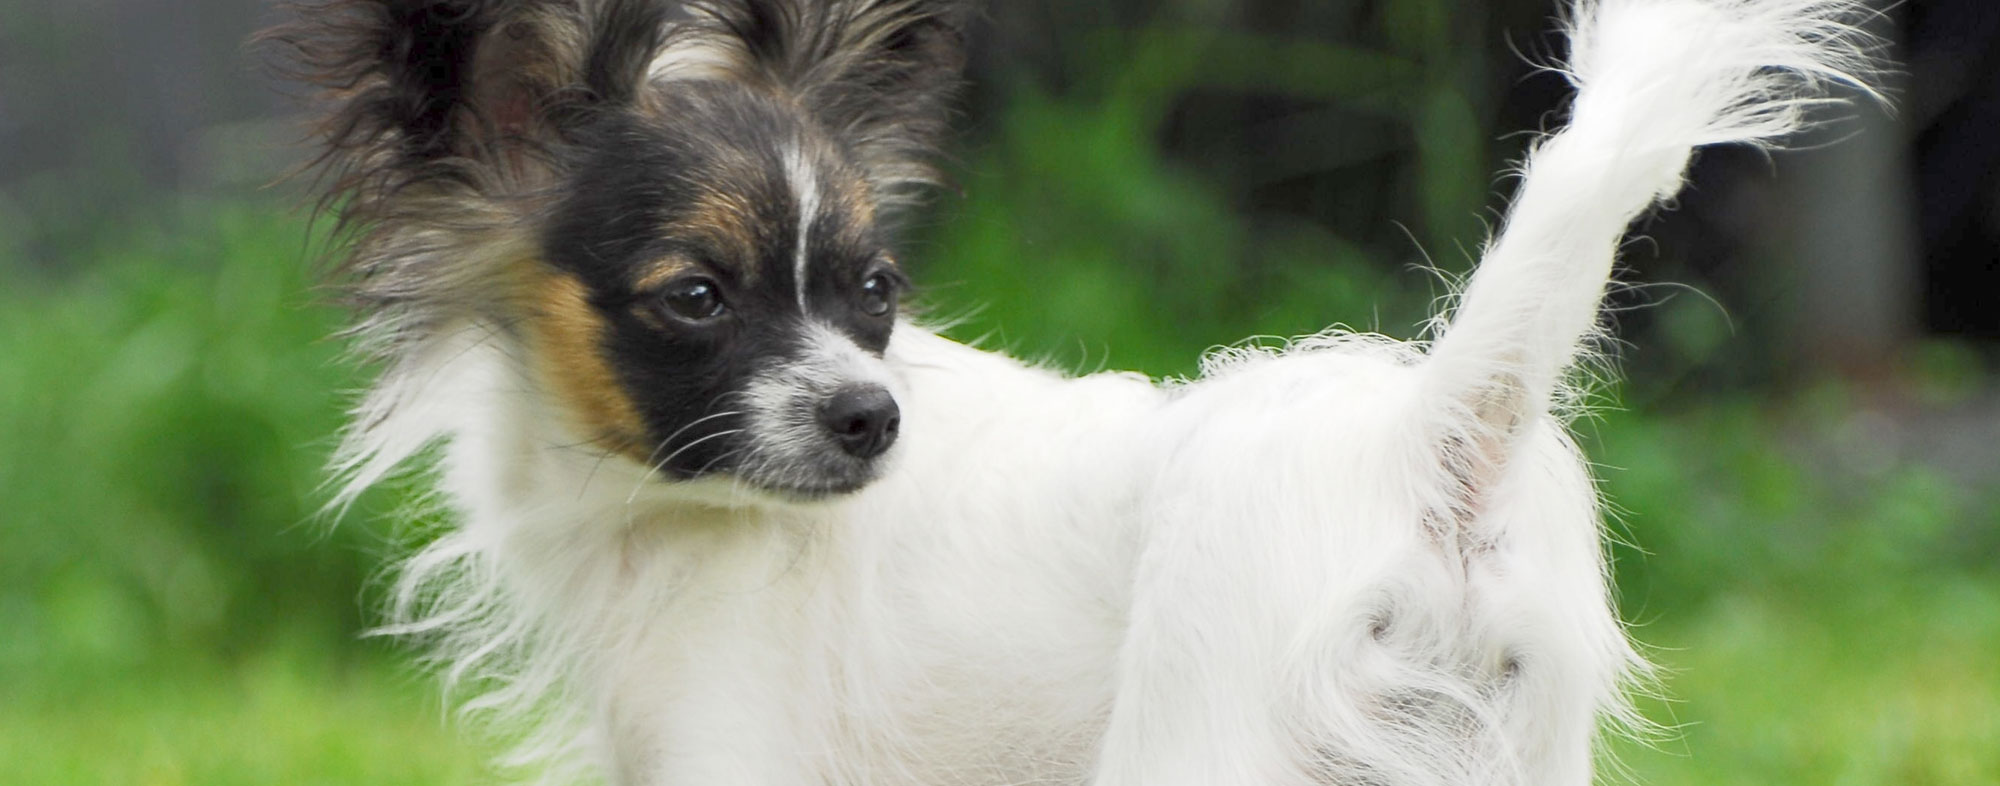 A raised tail also implies the body language of a confident dog